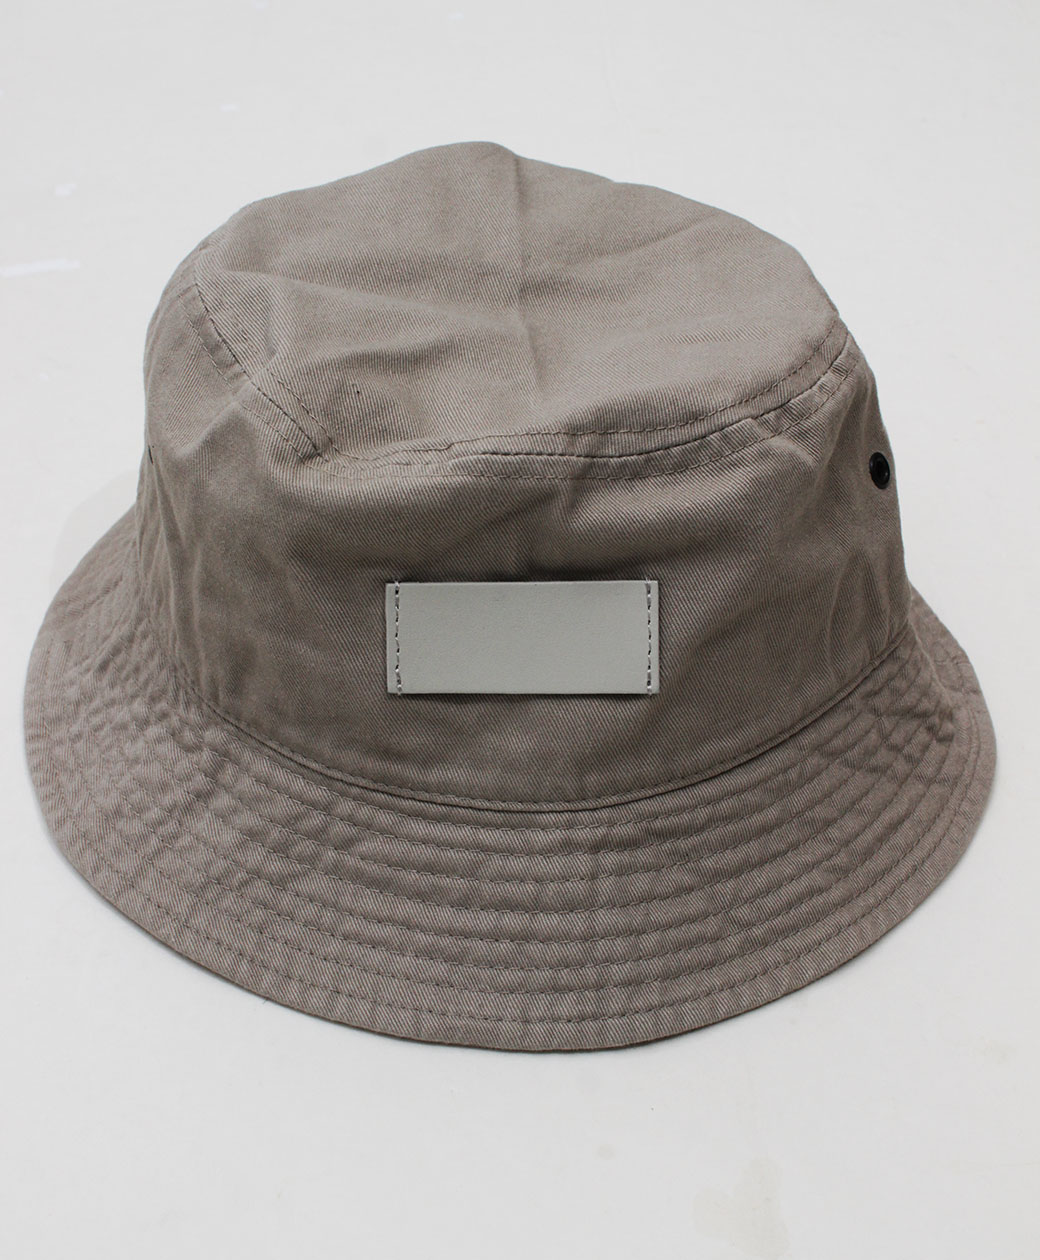 hobo COTTON TWILL BUCKET HAT(BEIGE)